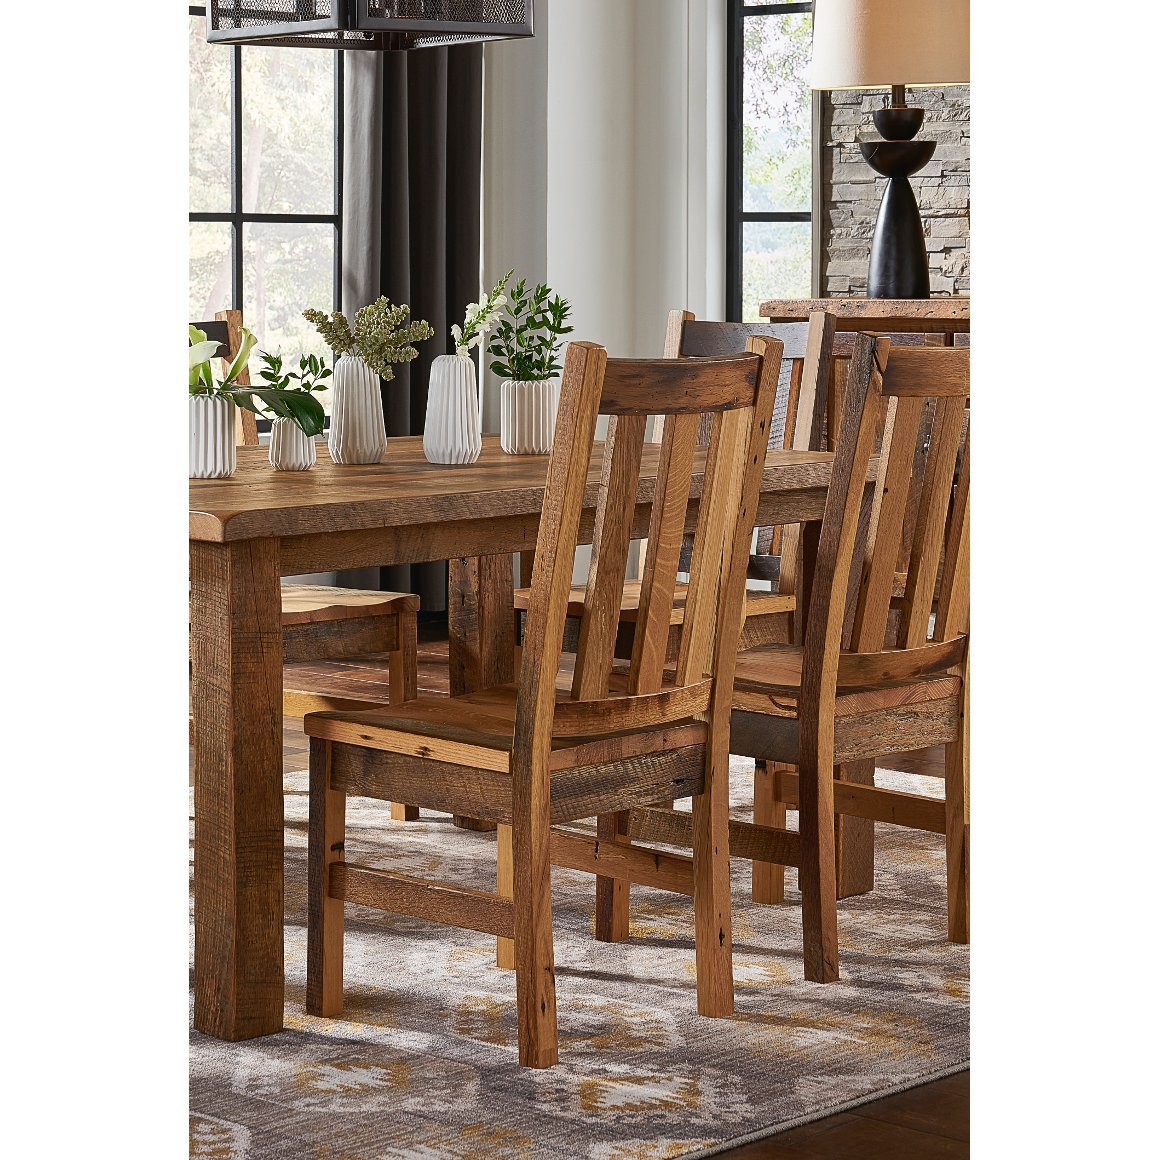 Astounding Rustic Reclaimed Wood Dining Room Chair Barnwood Home Interior And Landscaping Eliaenasavecom